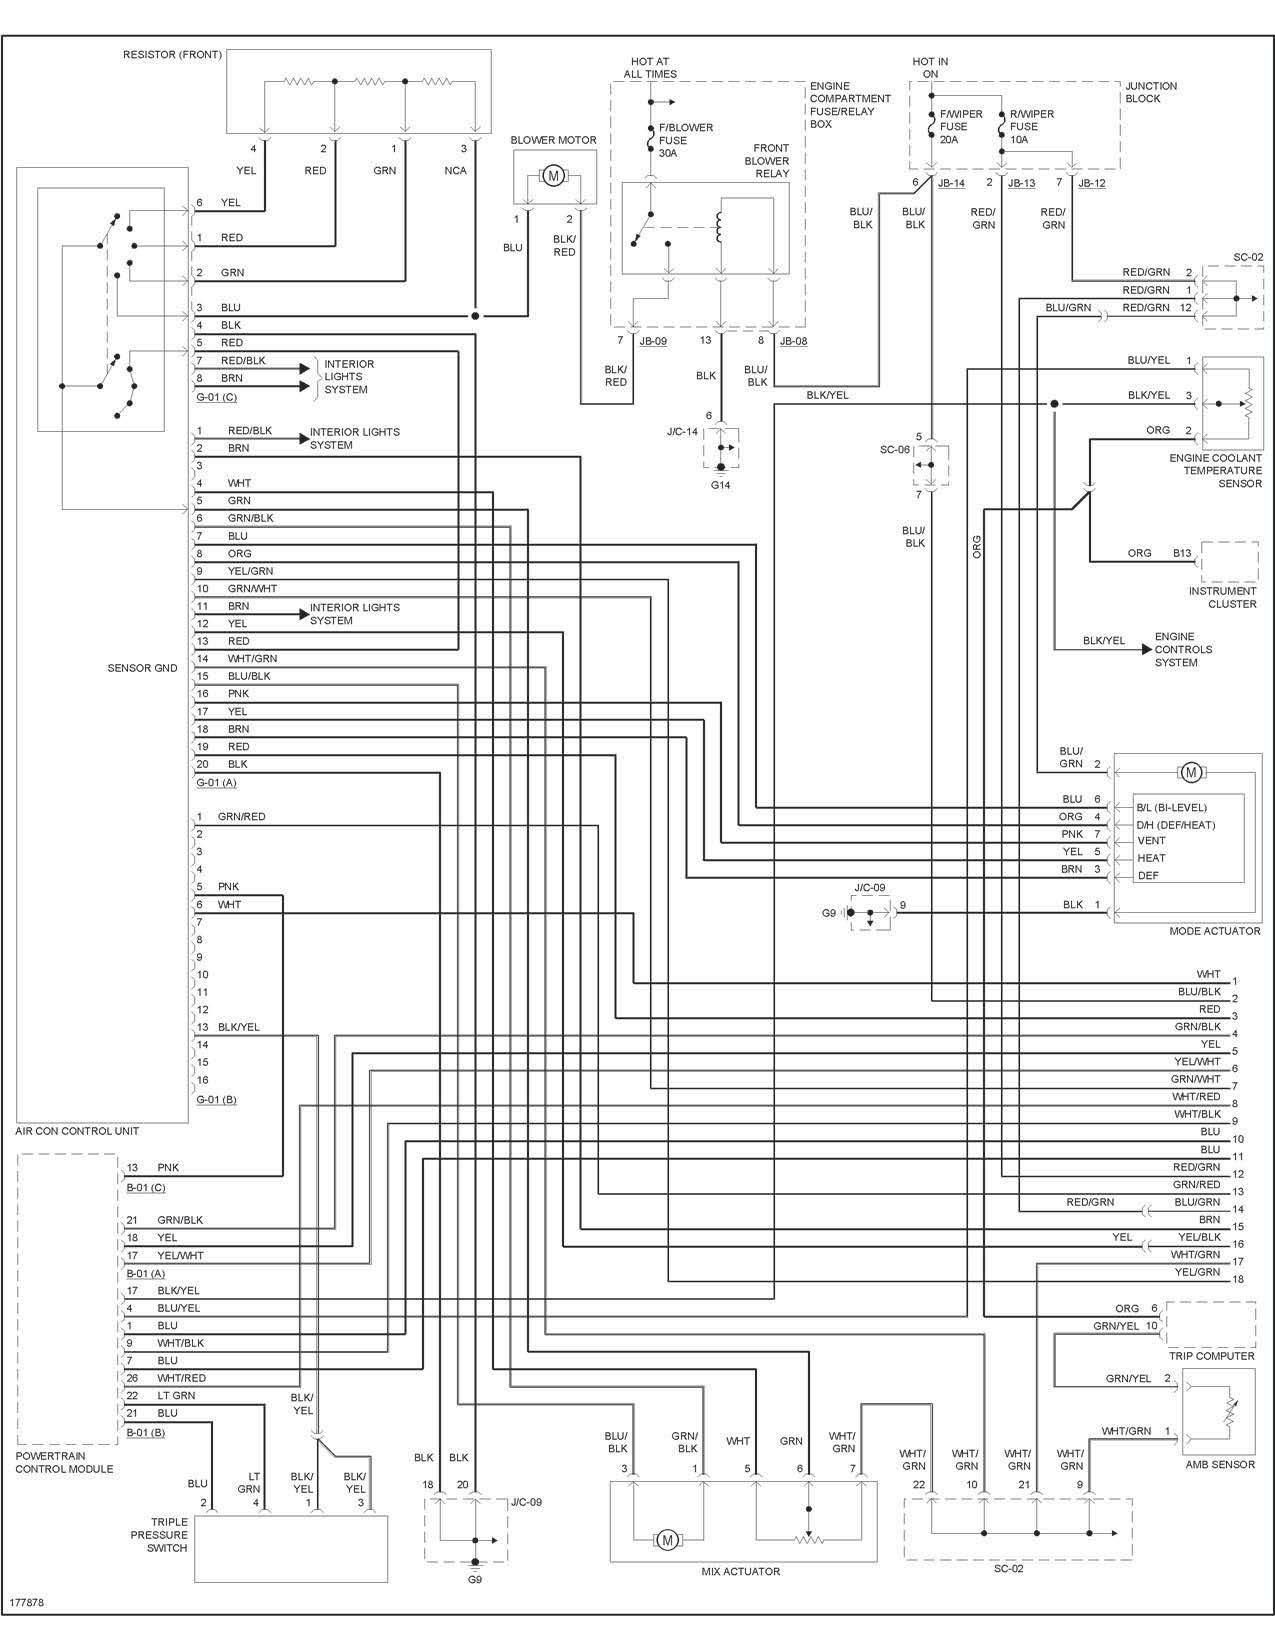 2004 Kia Amanti Engine Wiring Diagram in addition 5 8 To Heater Hose Connector as well 2001 Taurus Fuse Box Diagram in addition Technik Plan together with 1979 Ford F100 Ignition Switch Wiring. on 2002 windstar mirror wiring diagram